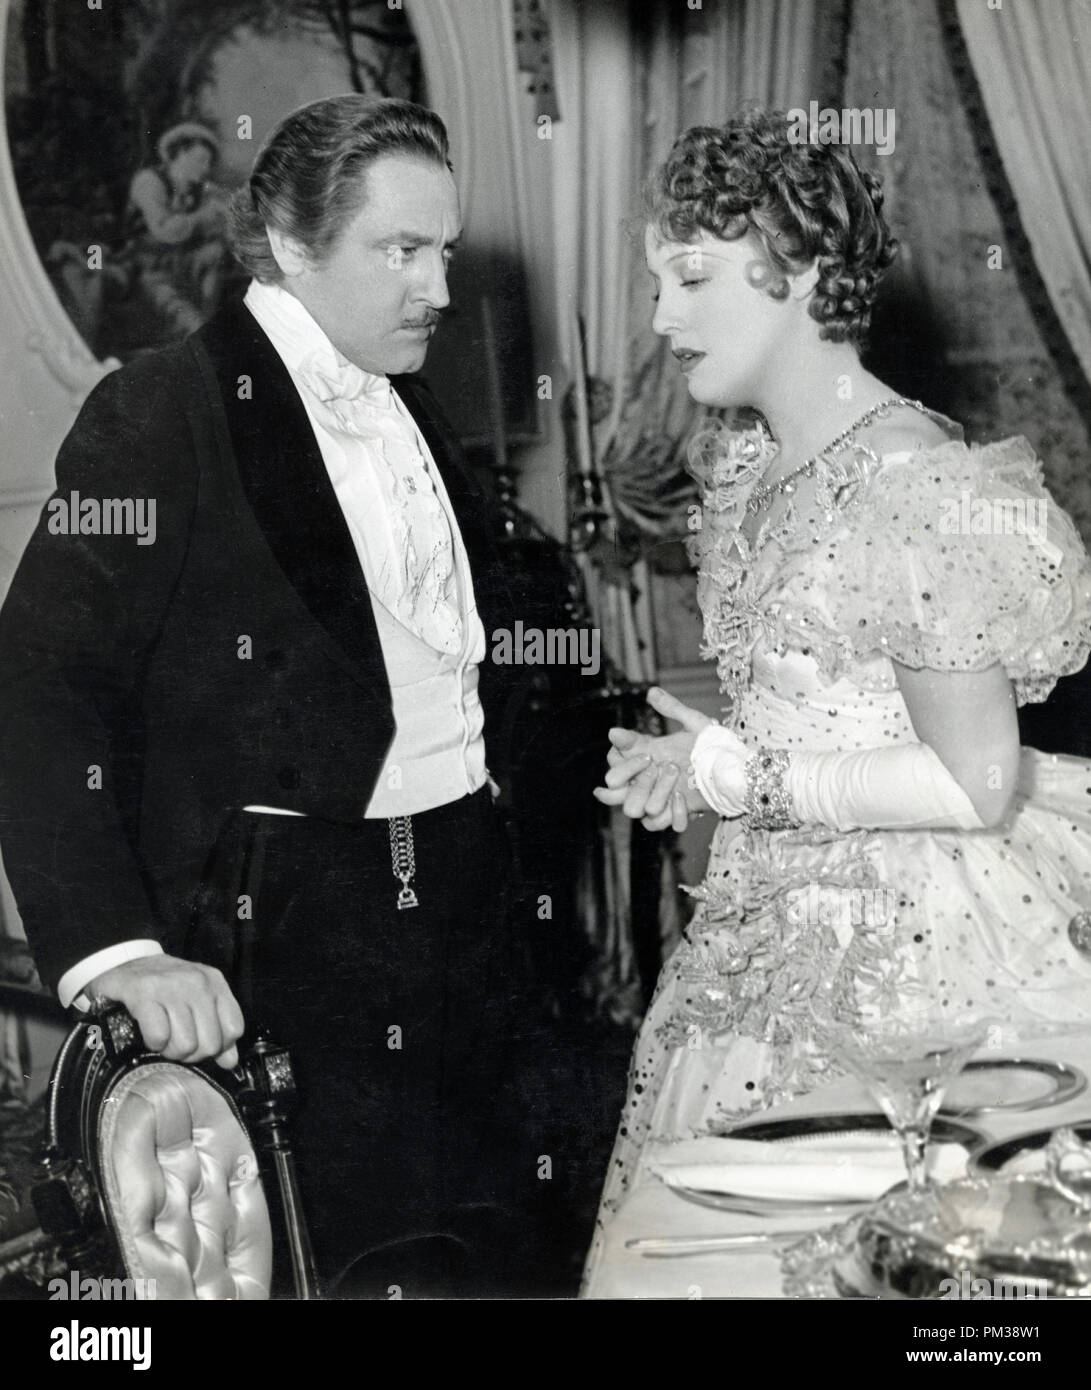 7ba6a17414e6 Jeanette MacDonald as Marcia Mornay as Miss Morrison and John Barrymore as  Nicolai Nazaroff in